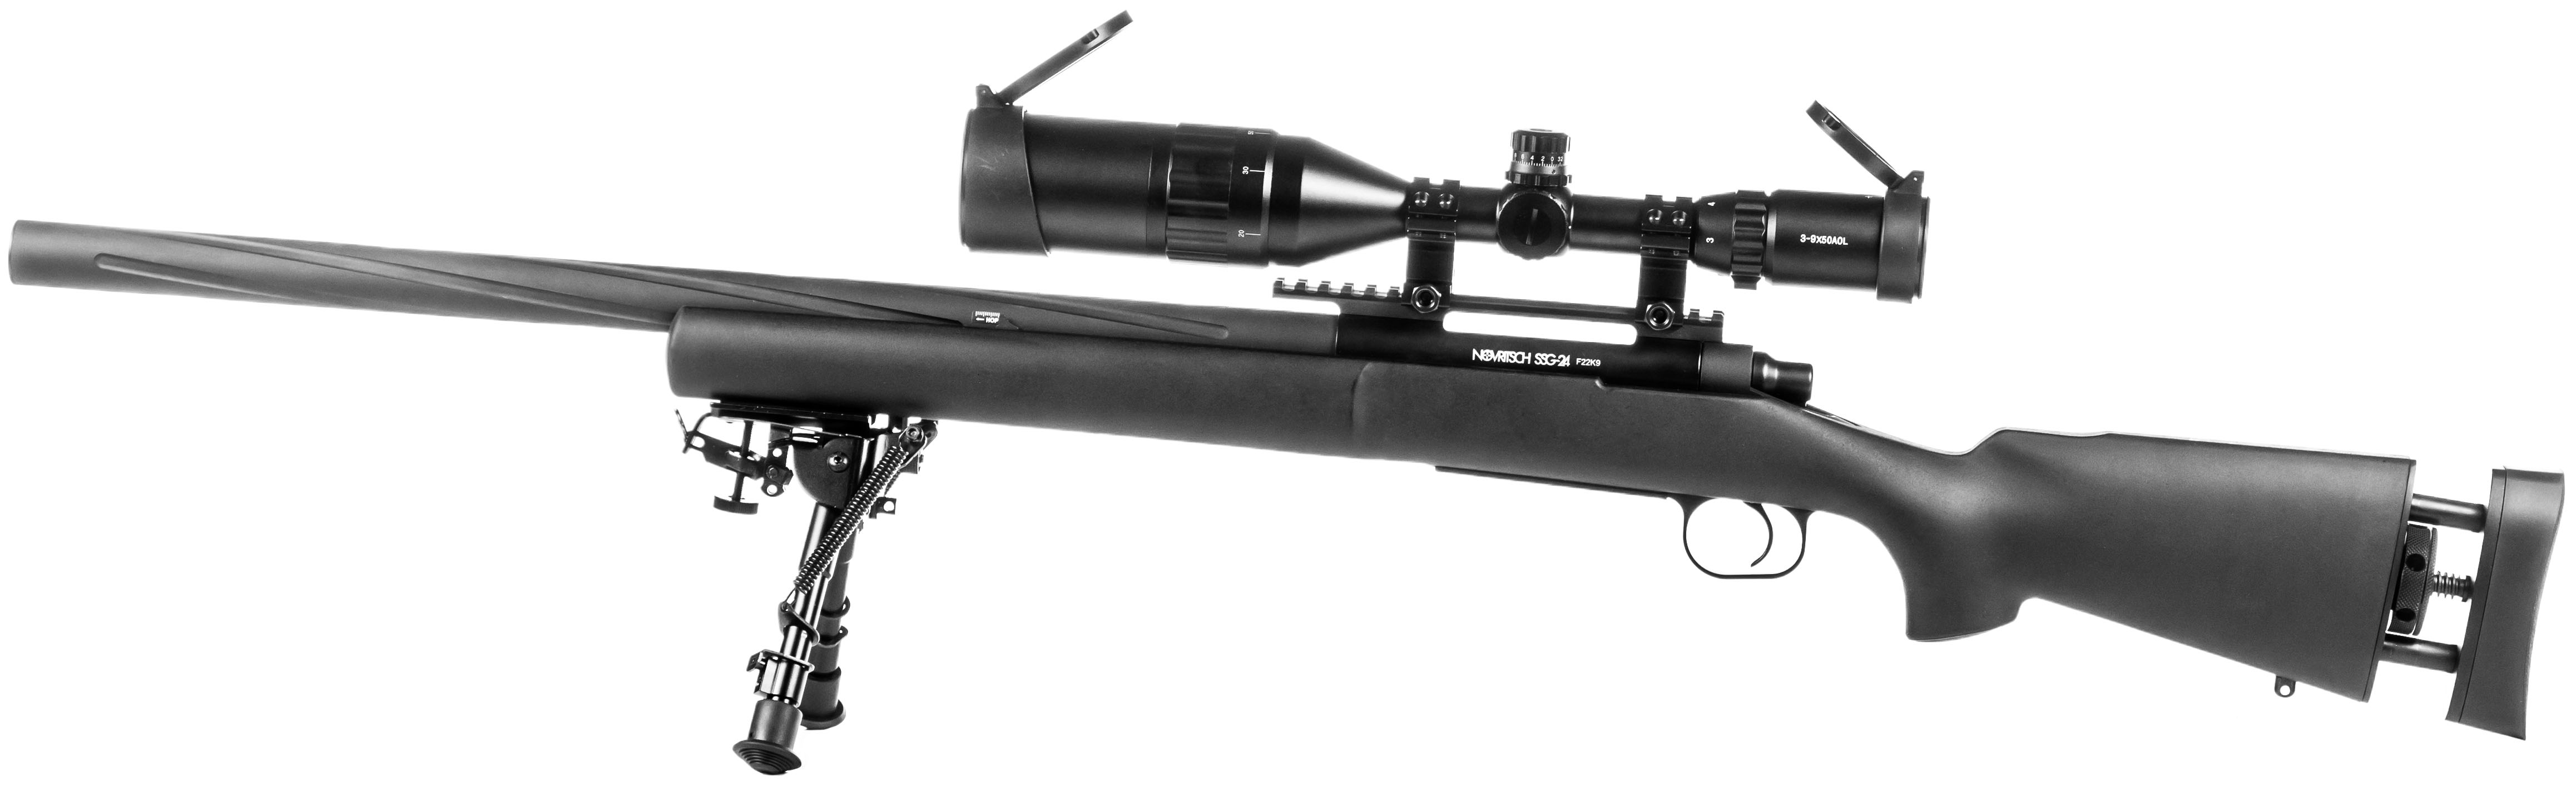 Novritsch SSG24 Airsoft Sniper Rifle